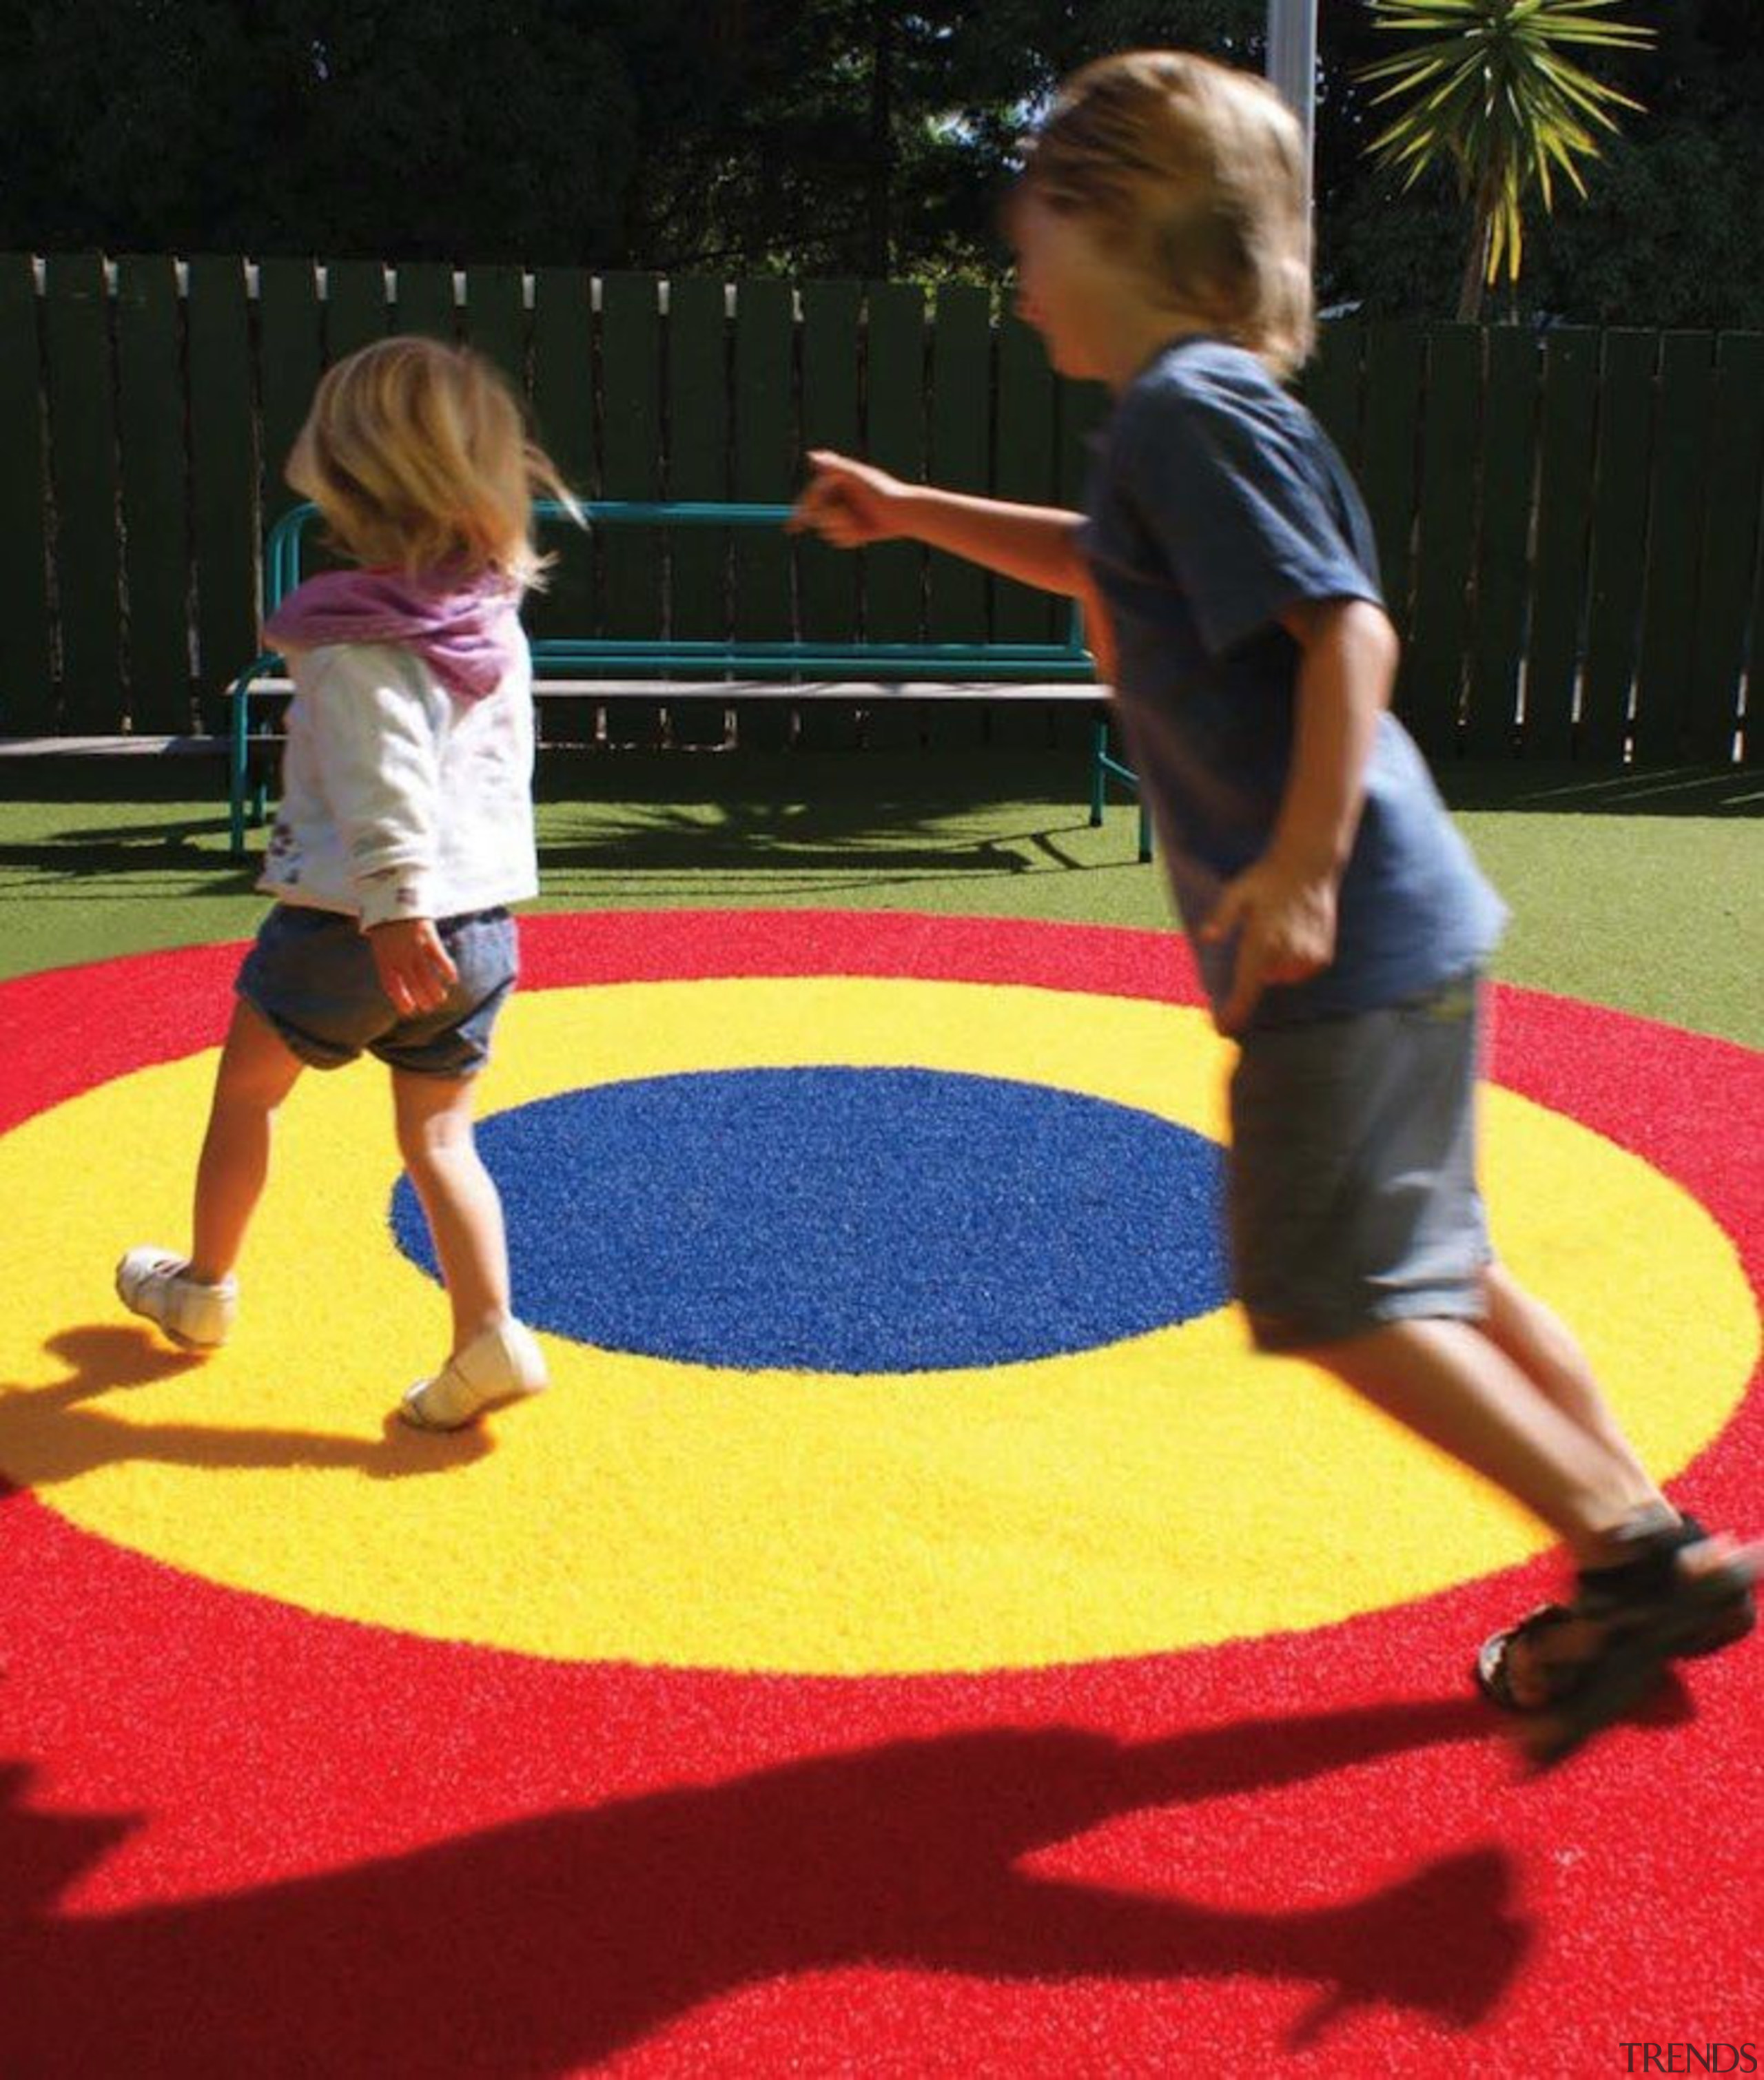 Pre-school, primary & seconday education - Pre-school, primary child, contact sport, day, flooring, fun, games, indoor games and sports, leisure, outdoor play equipment, physical fitness, play, playground, public space, recreation, sport venue, sports, yellow, black